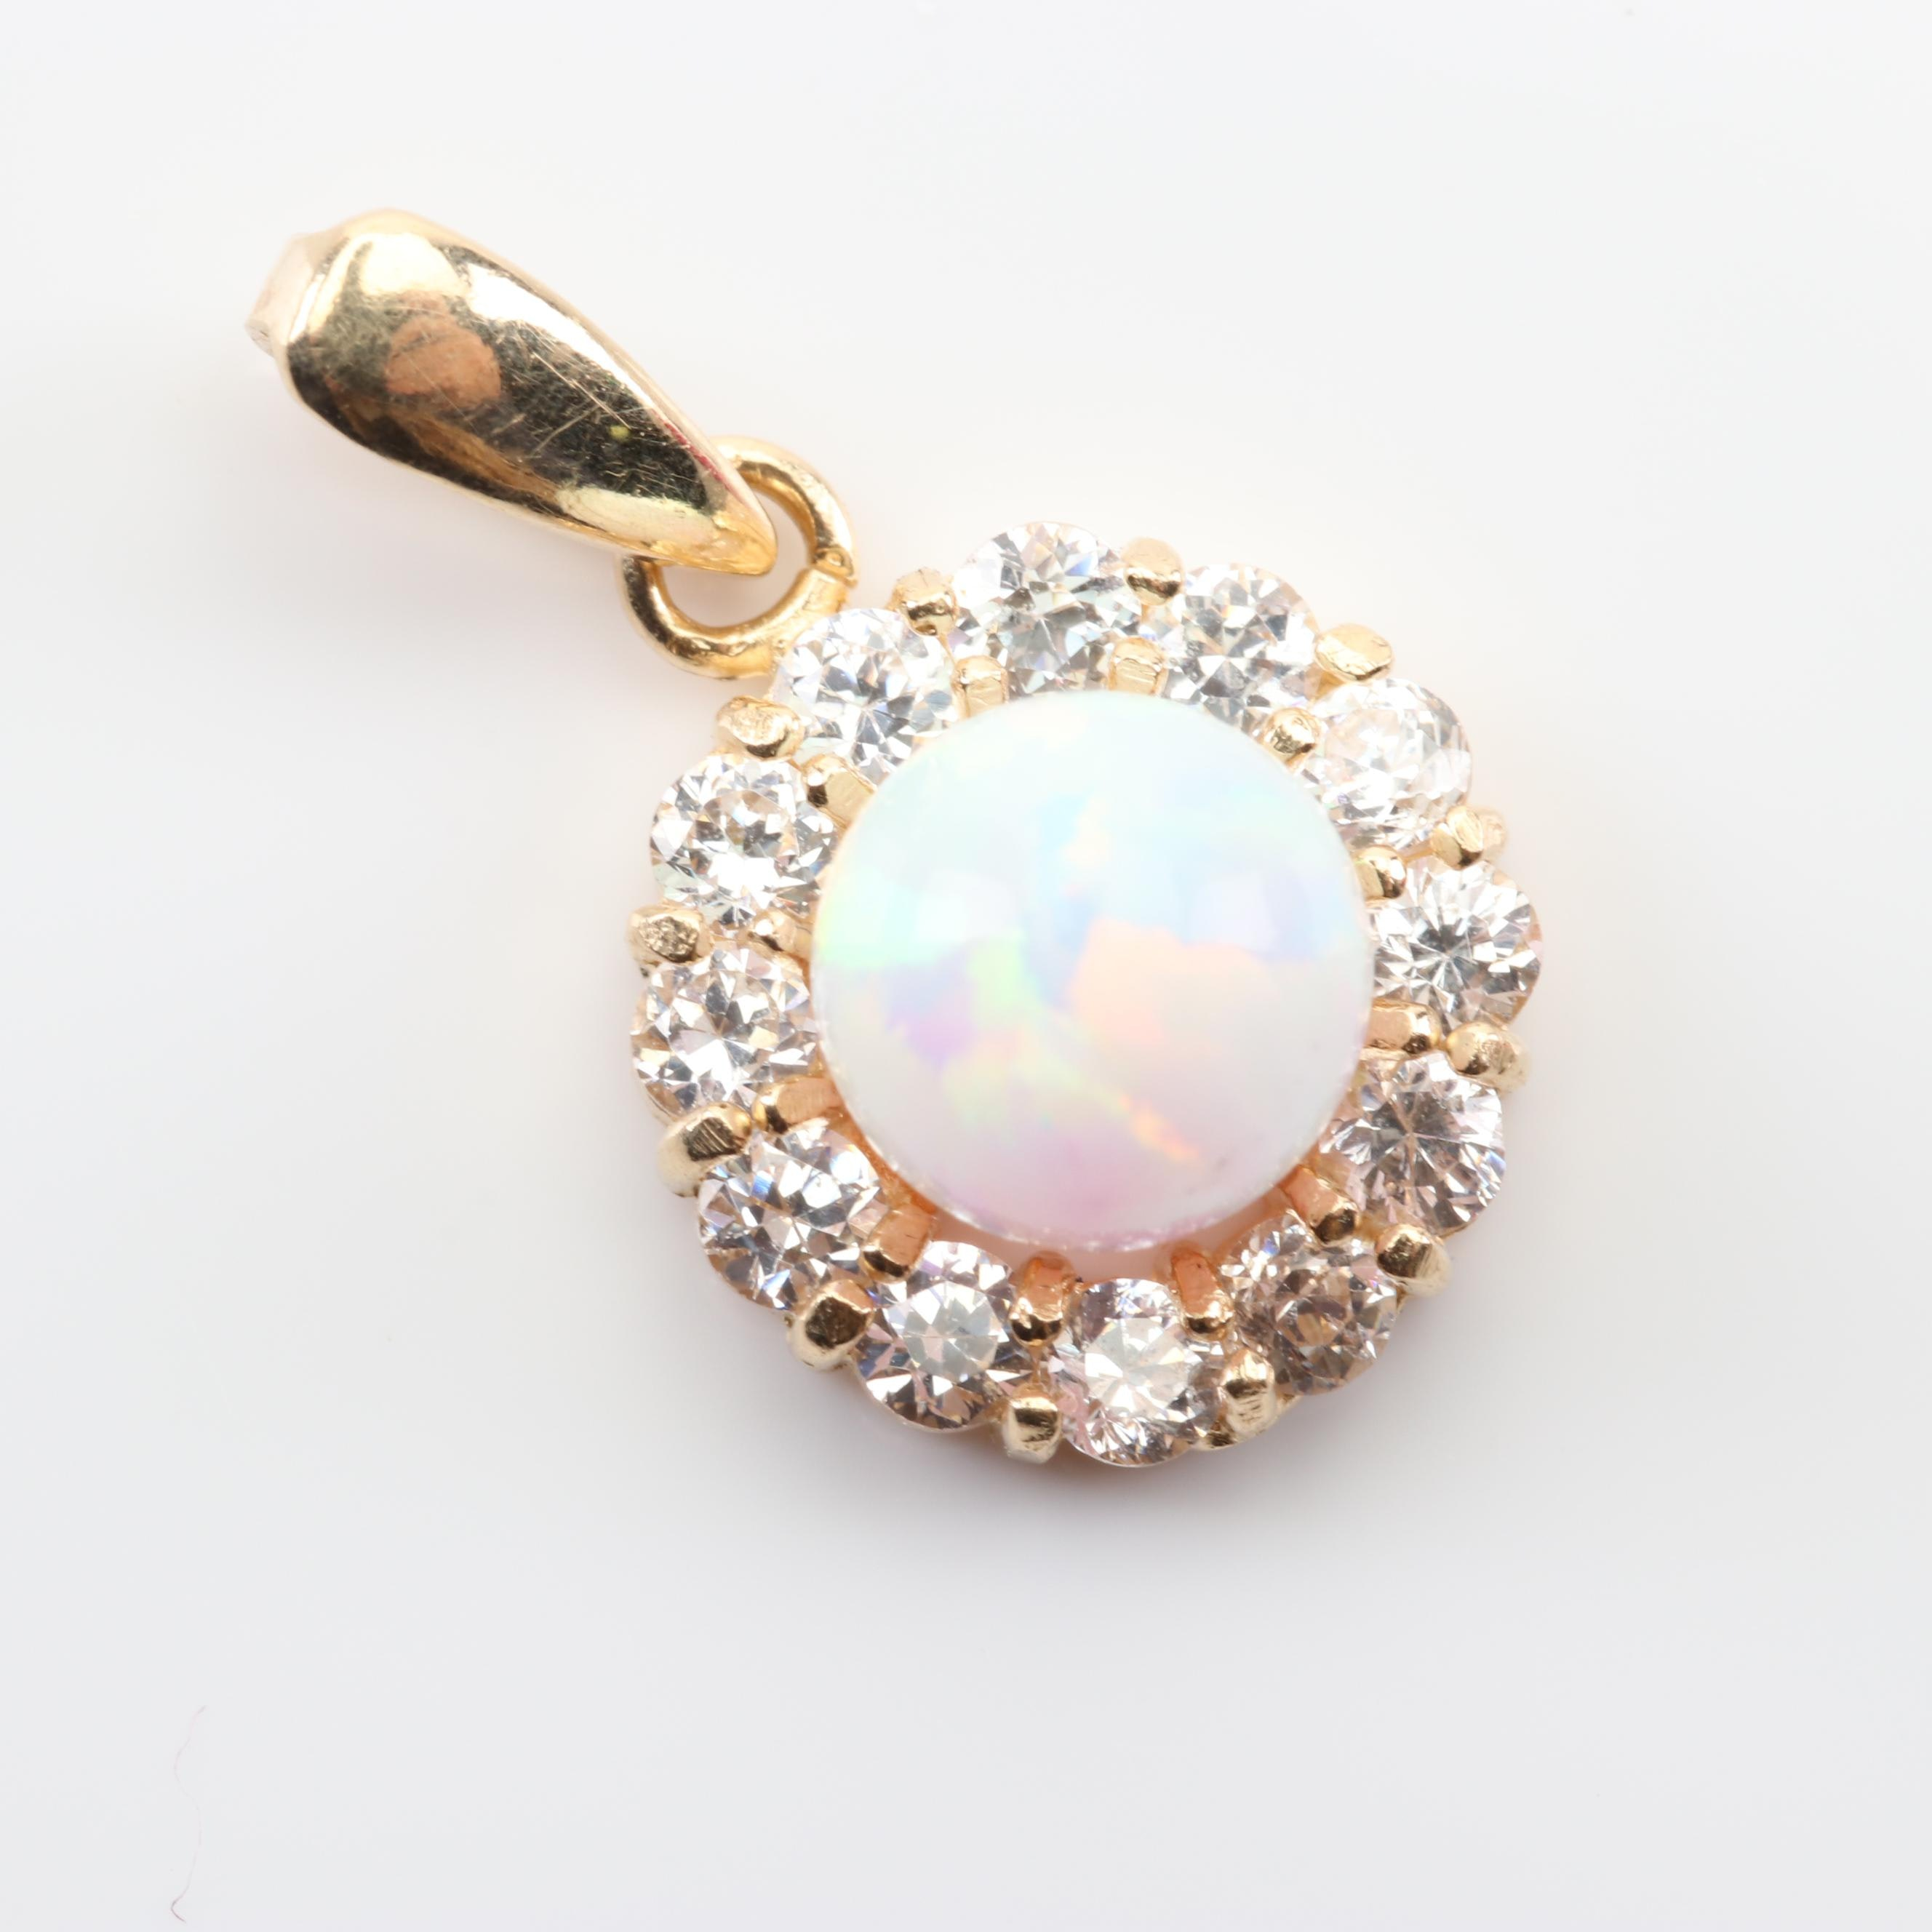 14K Yellow Gold Simulated Opal and Cubic Zirconia Halo Pendant